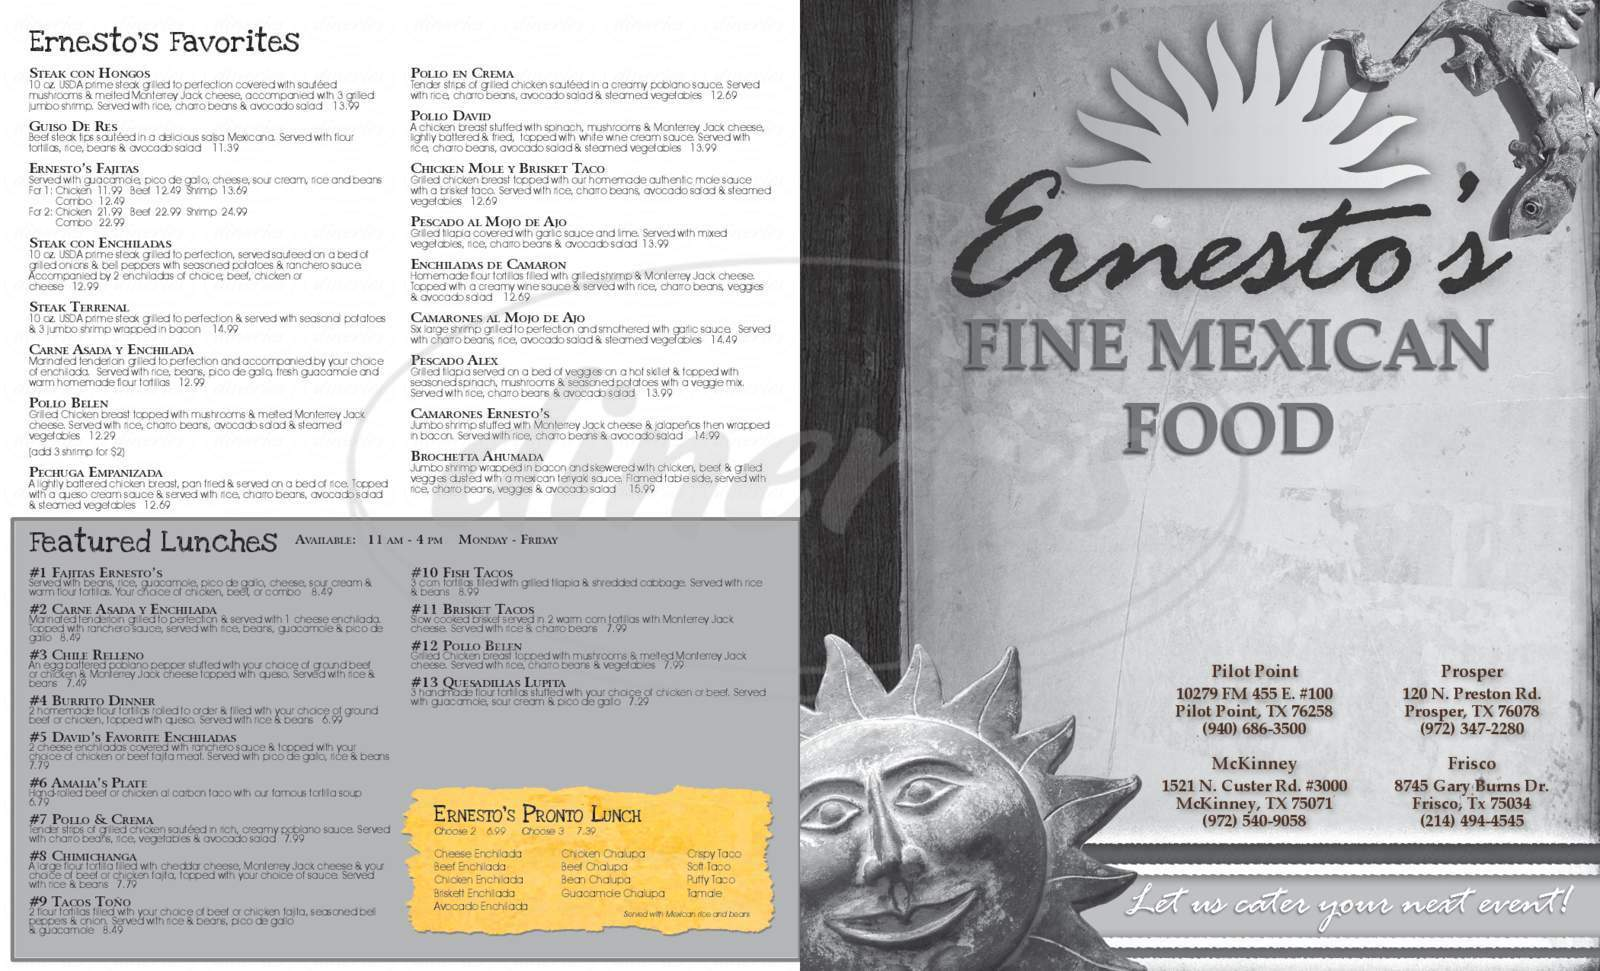 menu for Ernesto's Fine Mexican Food